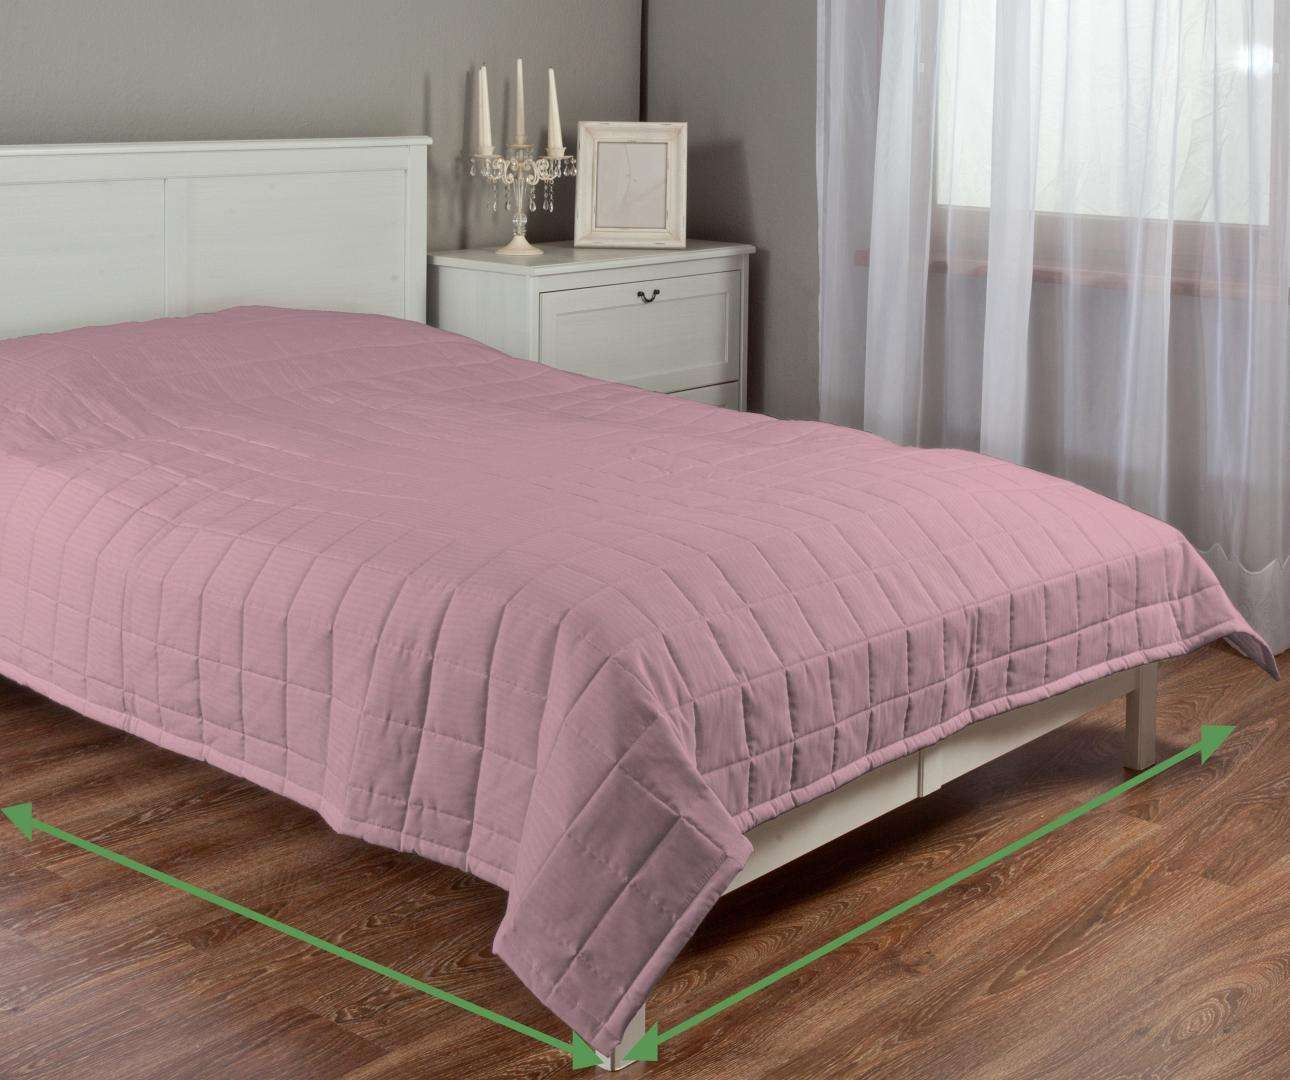 Quilted throw (check quilt pattern) in collection Milano, fabric: 150-35